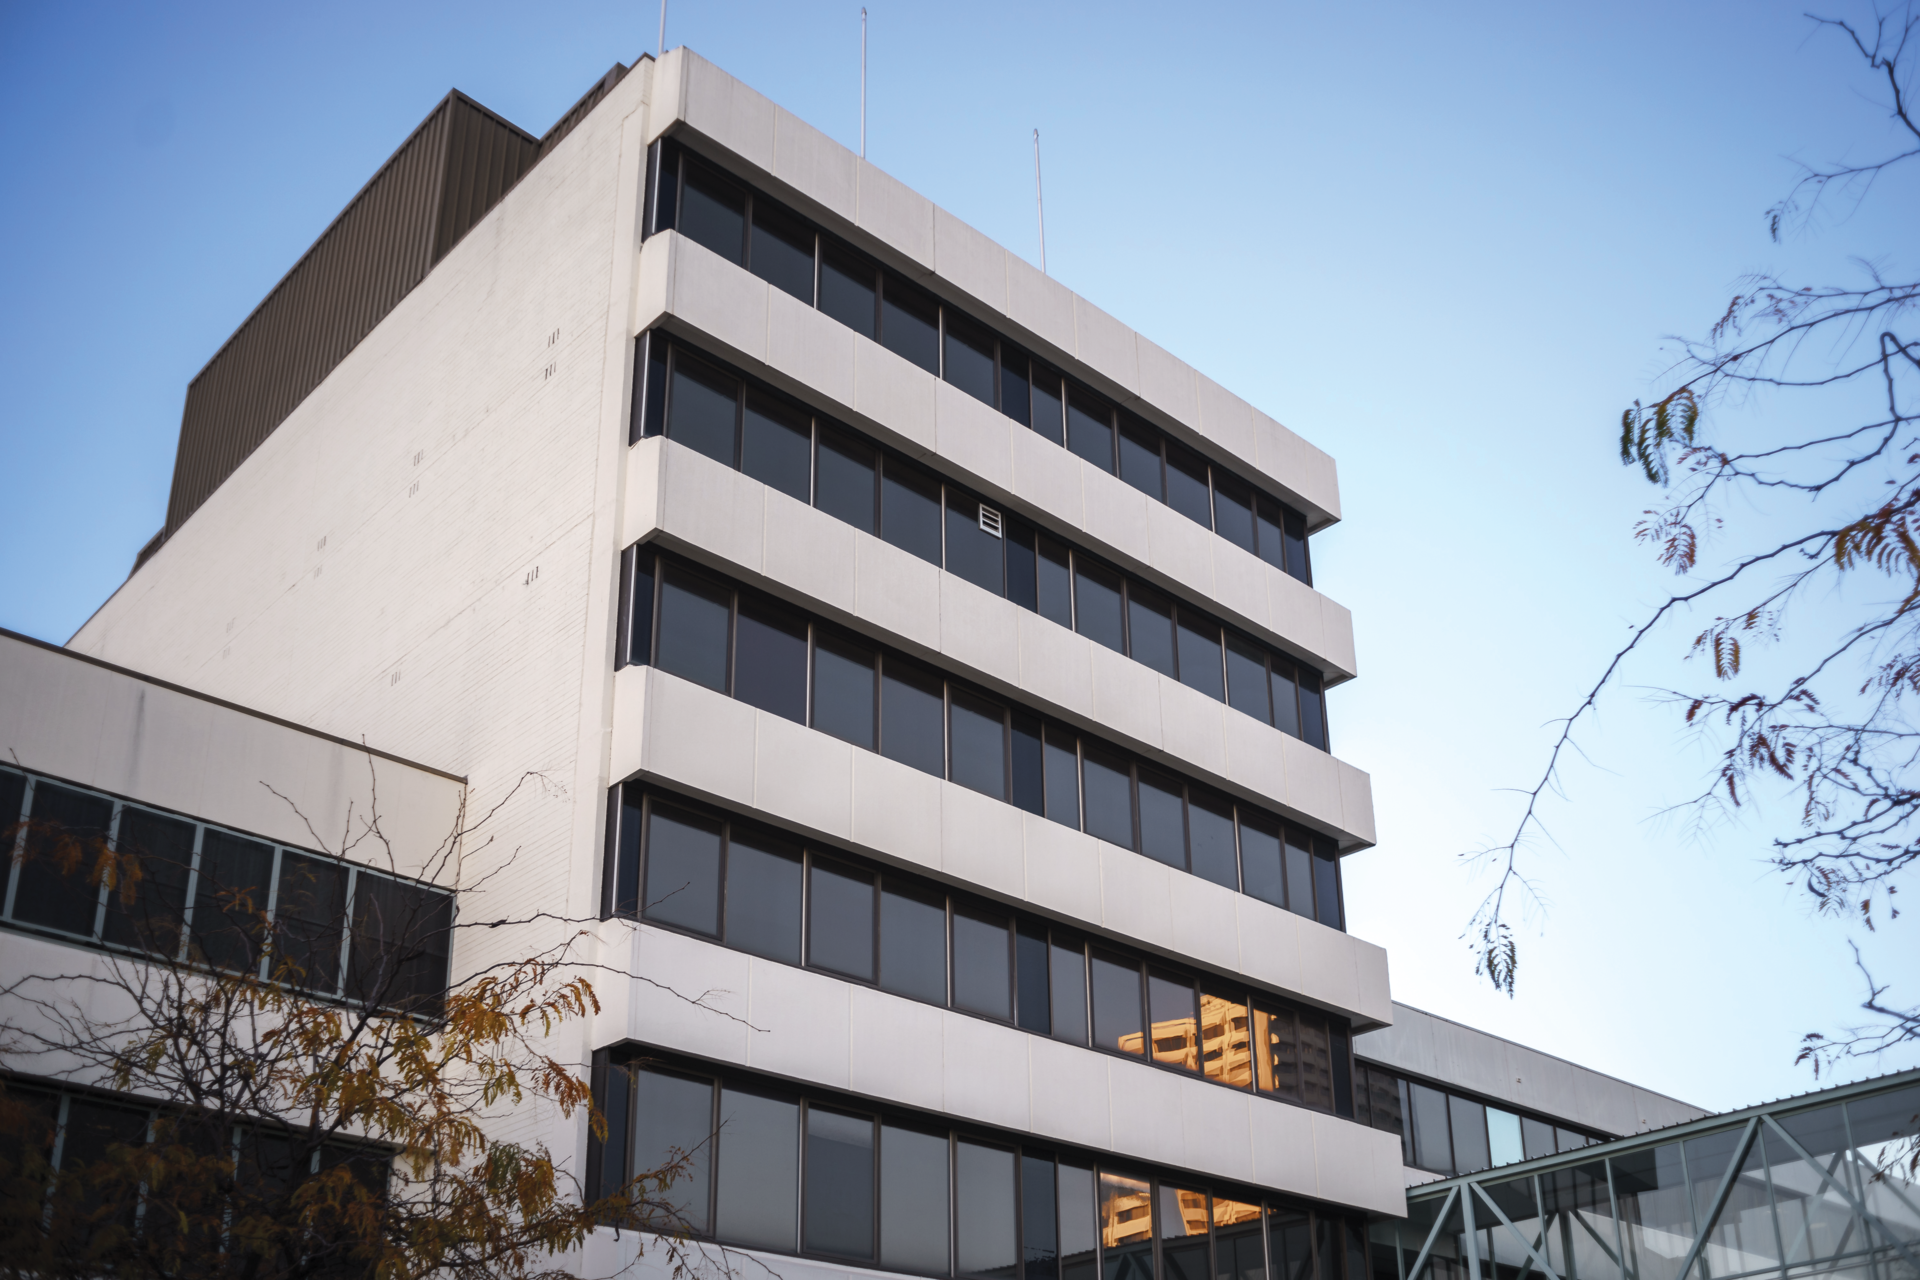 FLEXIBLE OFFICE ACCOMMODATION LOCATED IN THE HEART OF WODEN